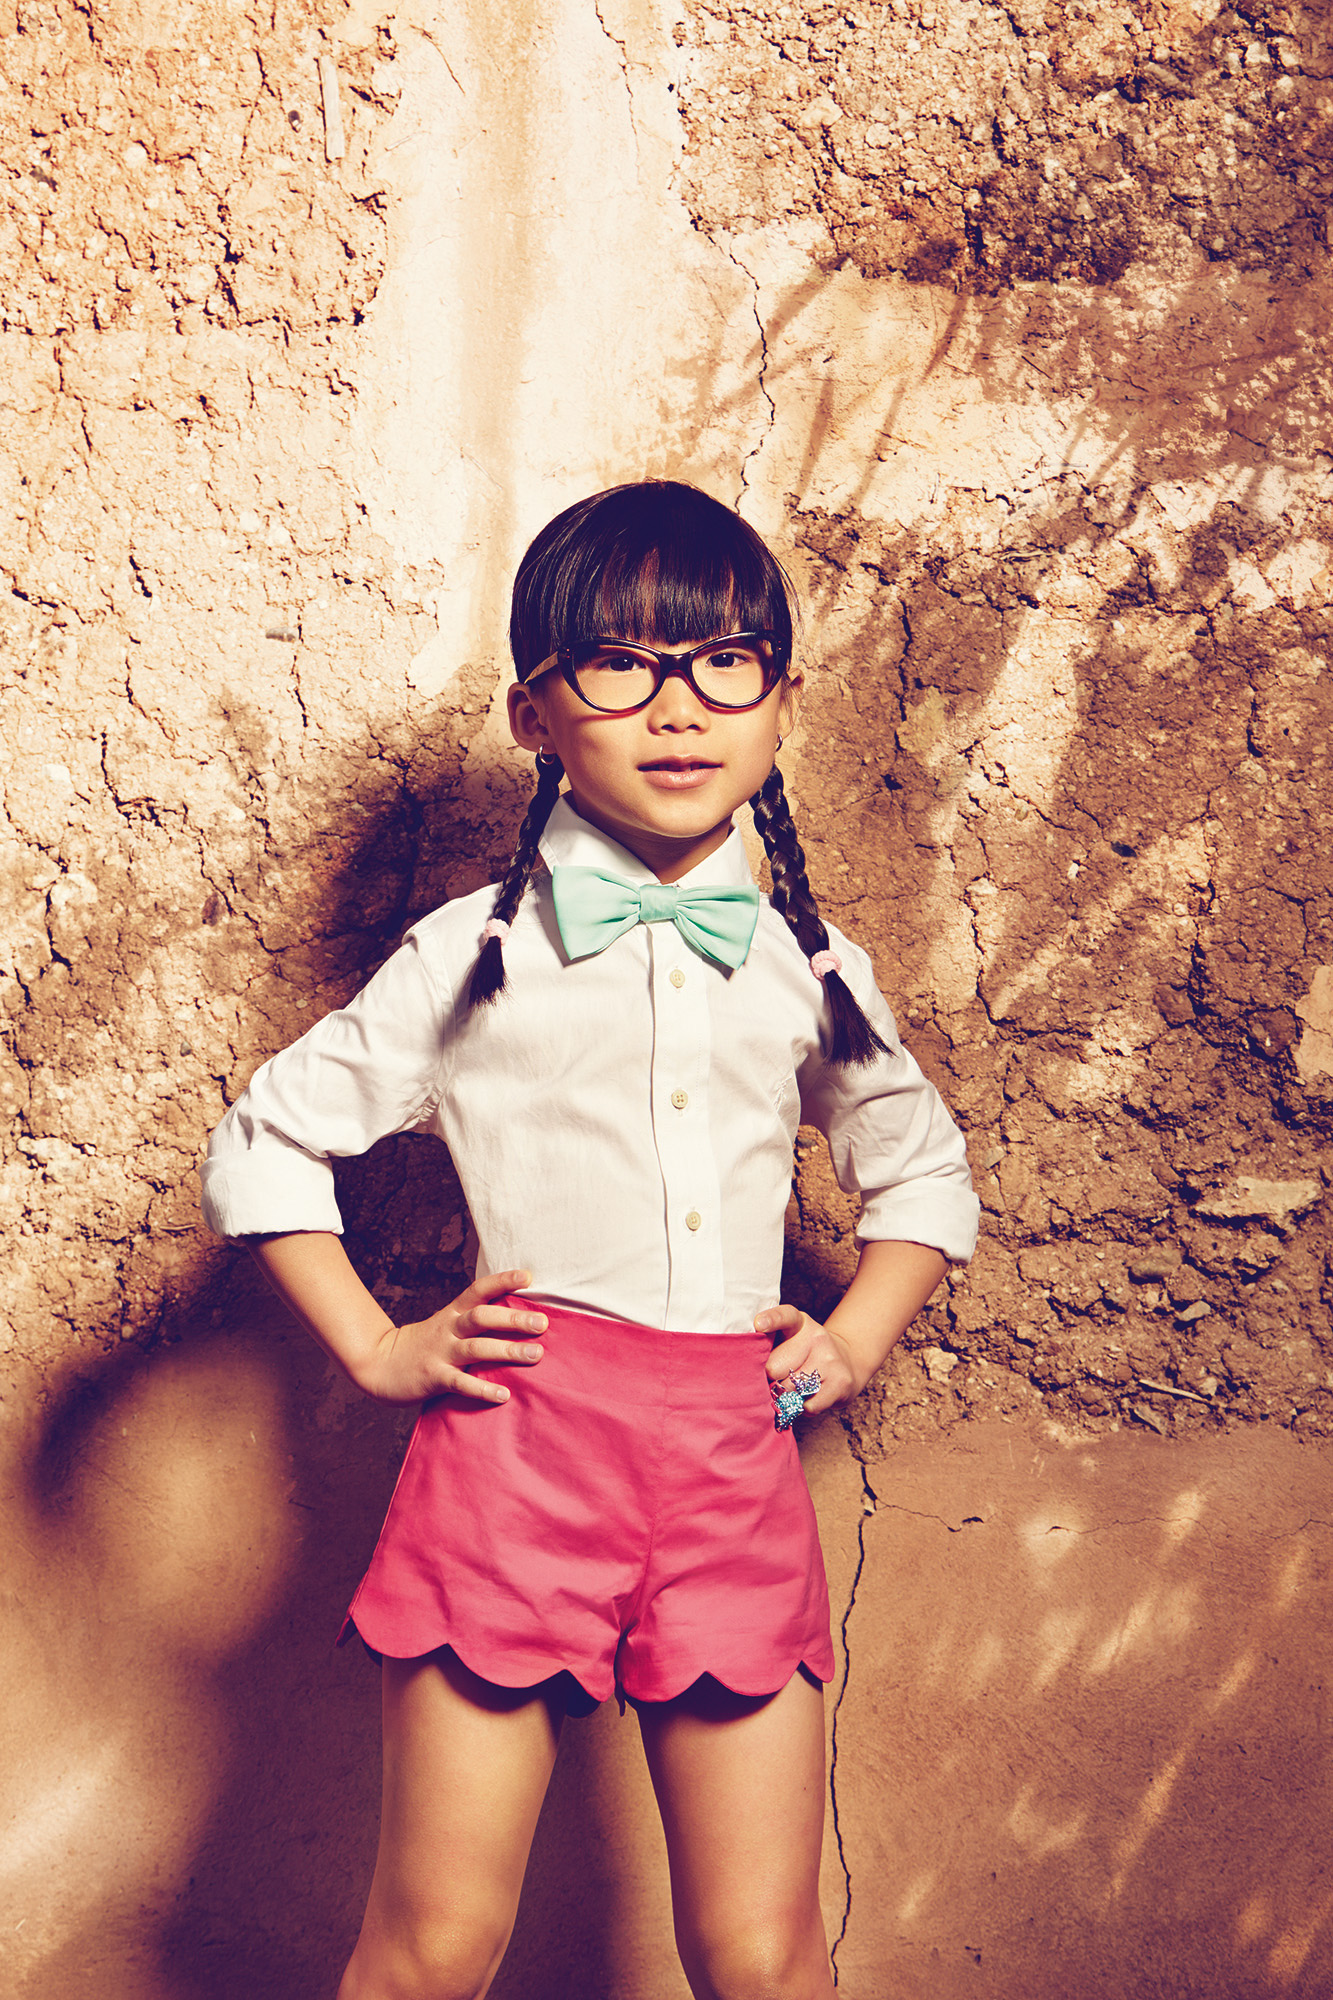 Ilve Little girl with spectacles agaist rock face